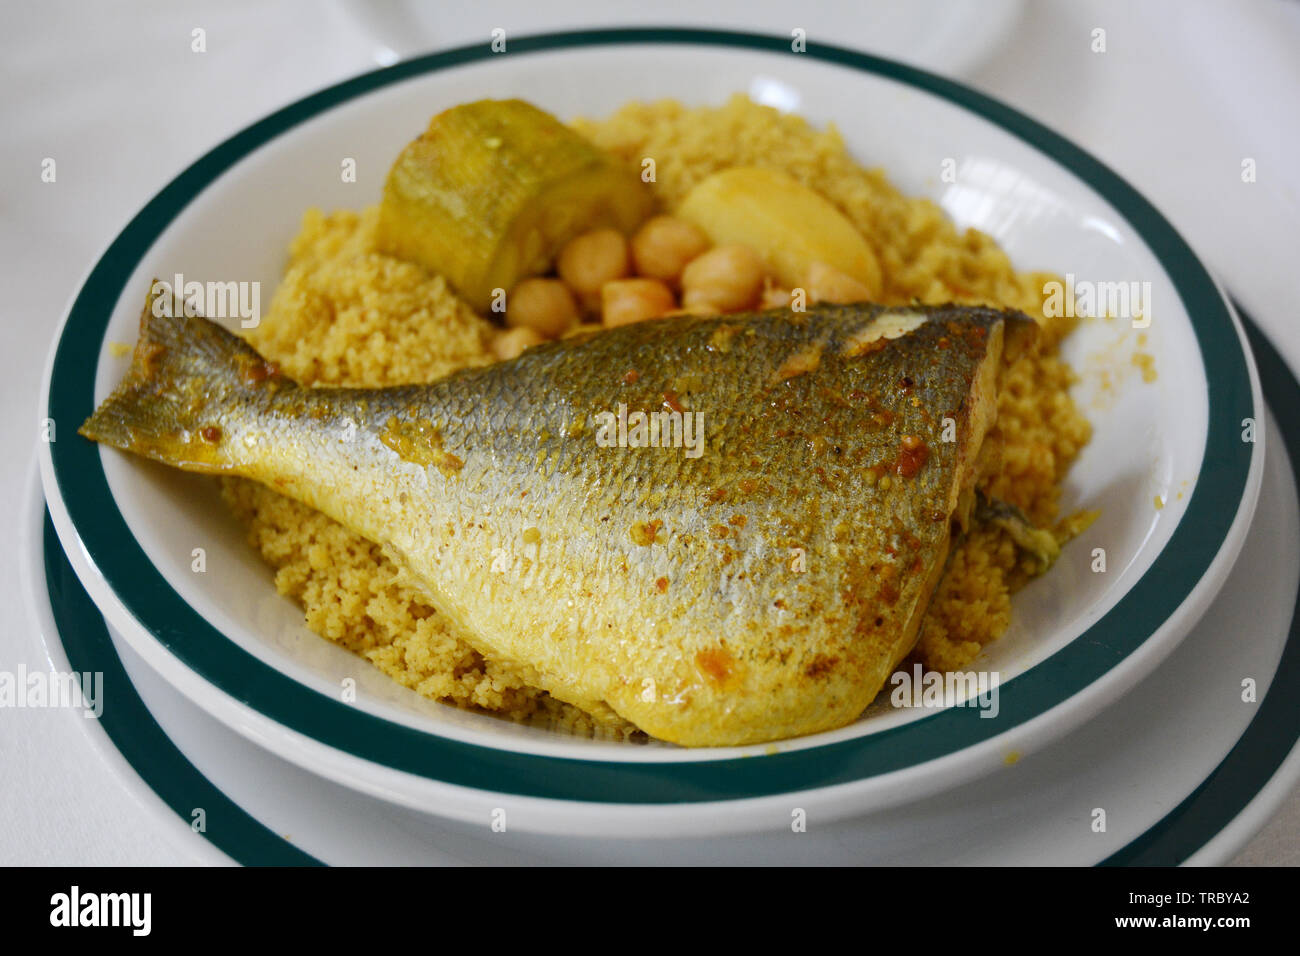 A traditional North African dish of couscous with fish (sea bream), chickpeas and vegetables, served at a restaurant in the medina of Tunis, Tunisia. Stock Photo